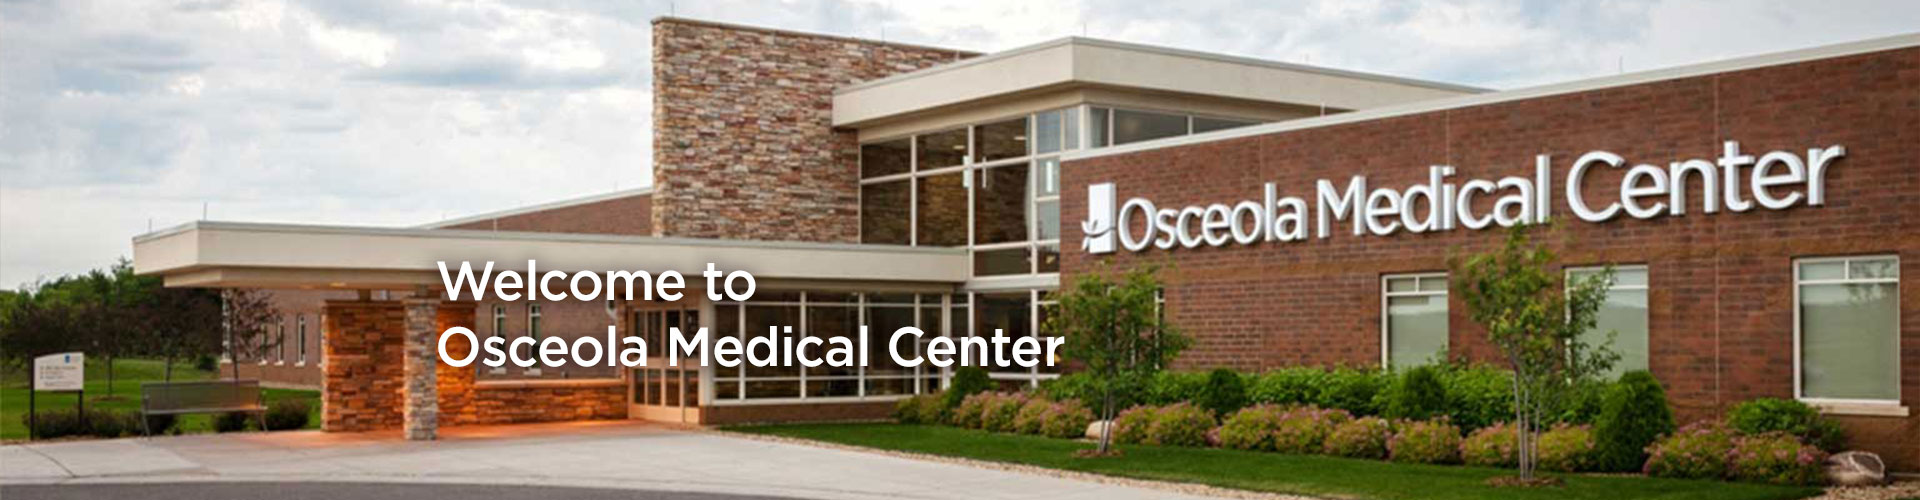 Welcome to Osceola Medical Center Banner